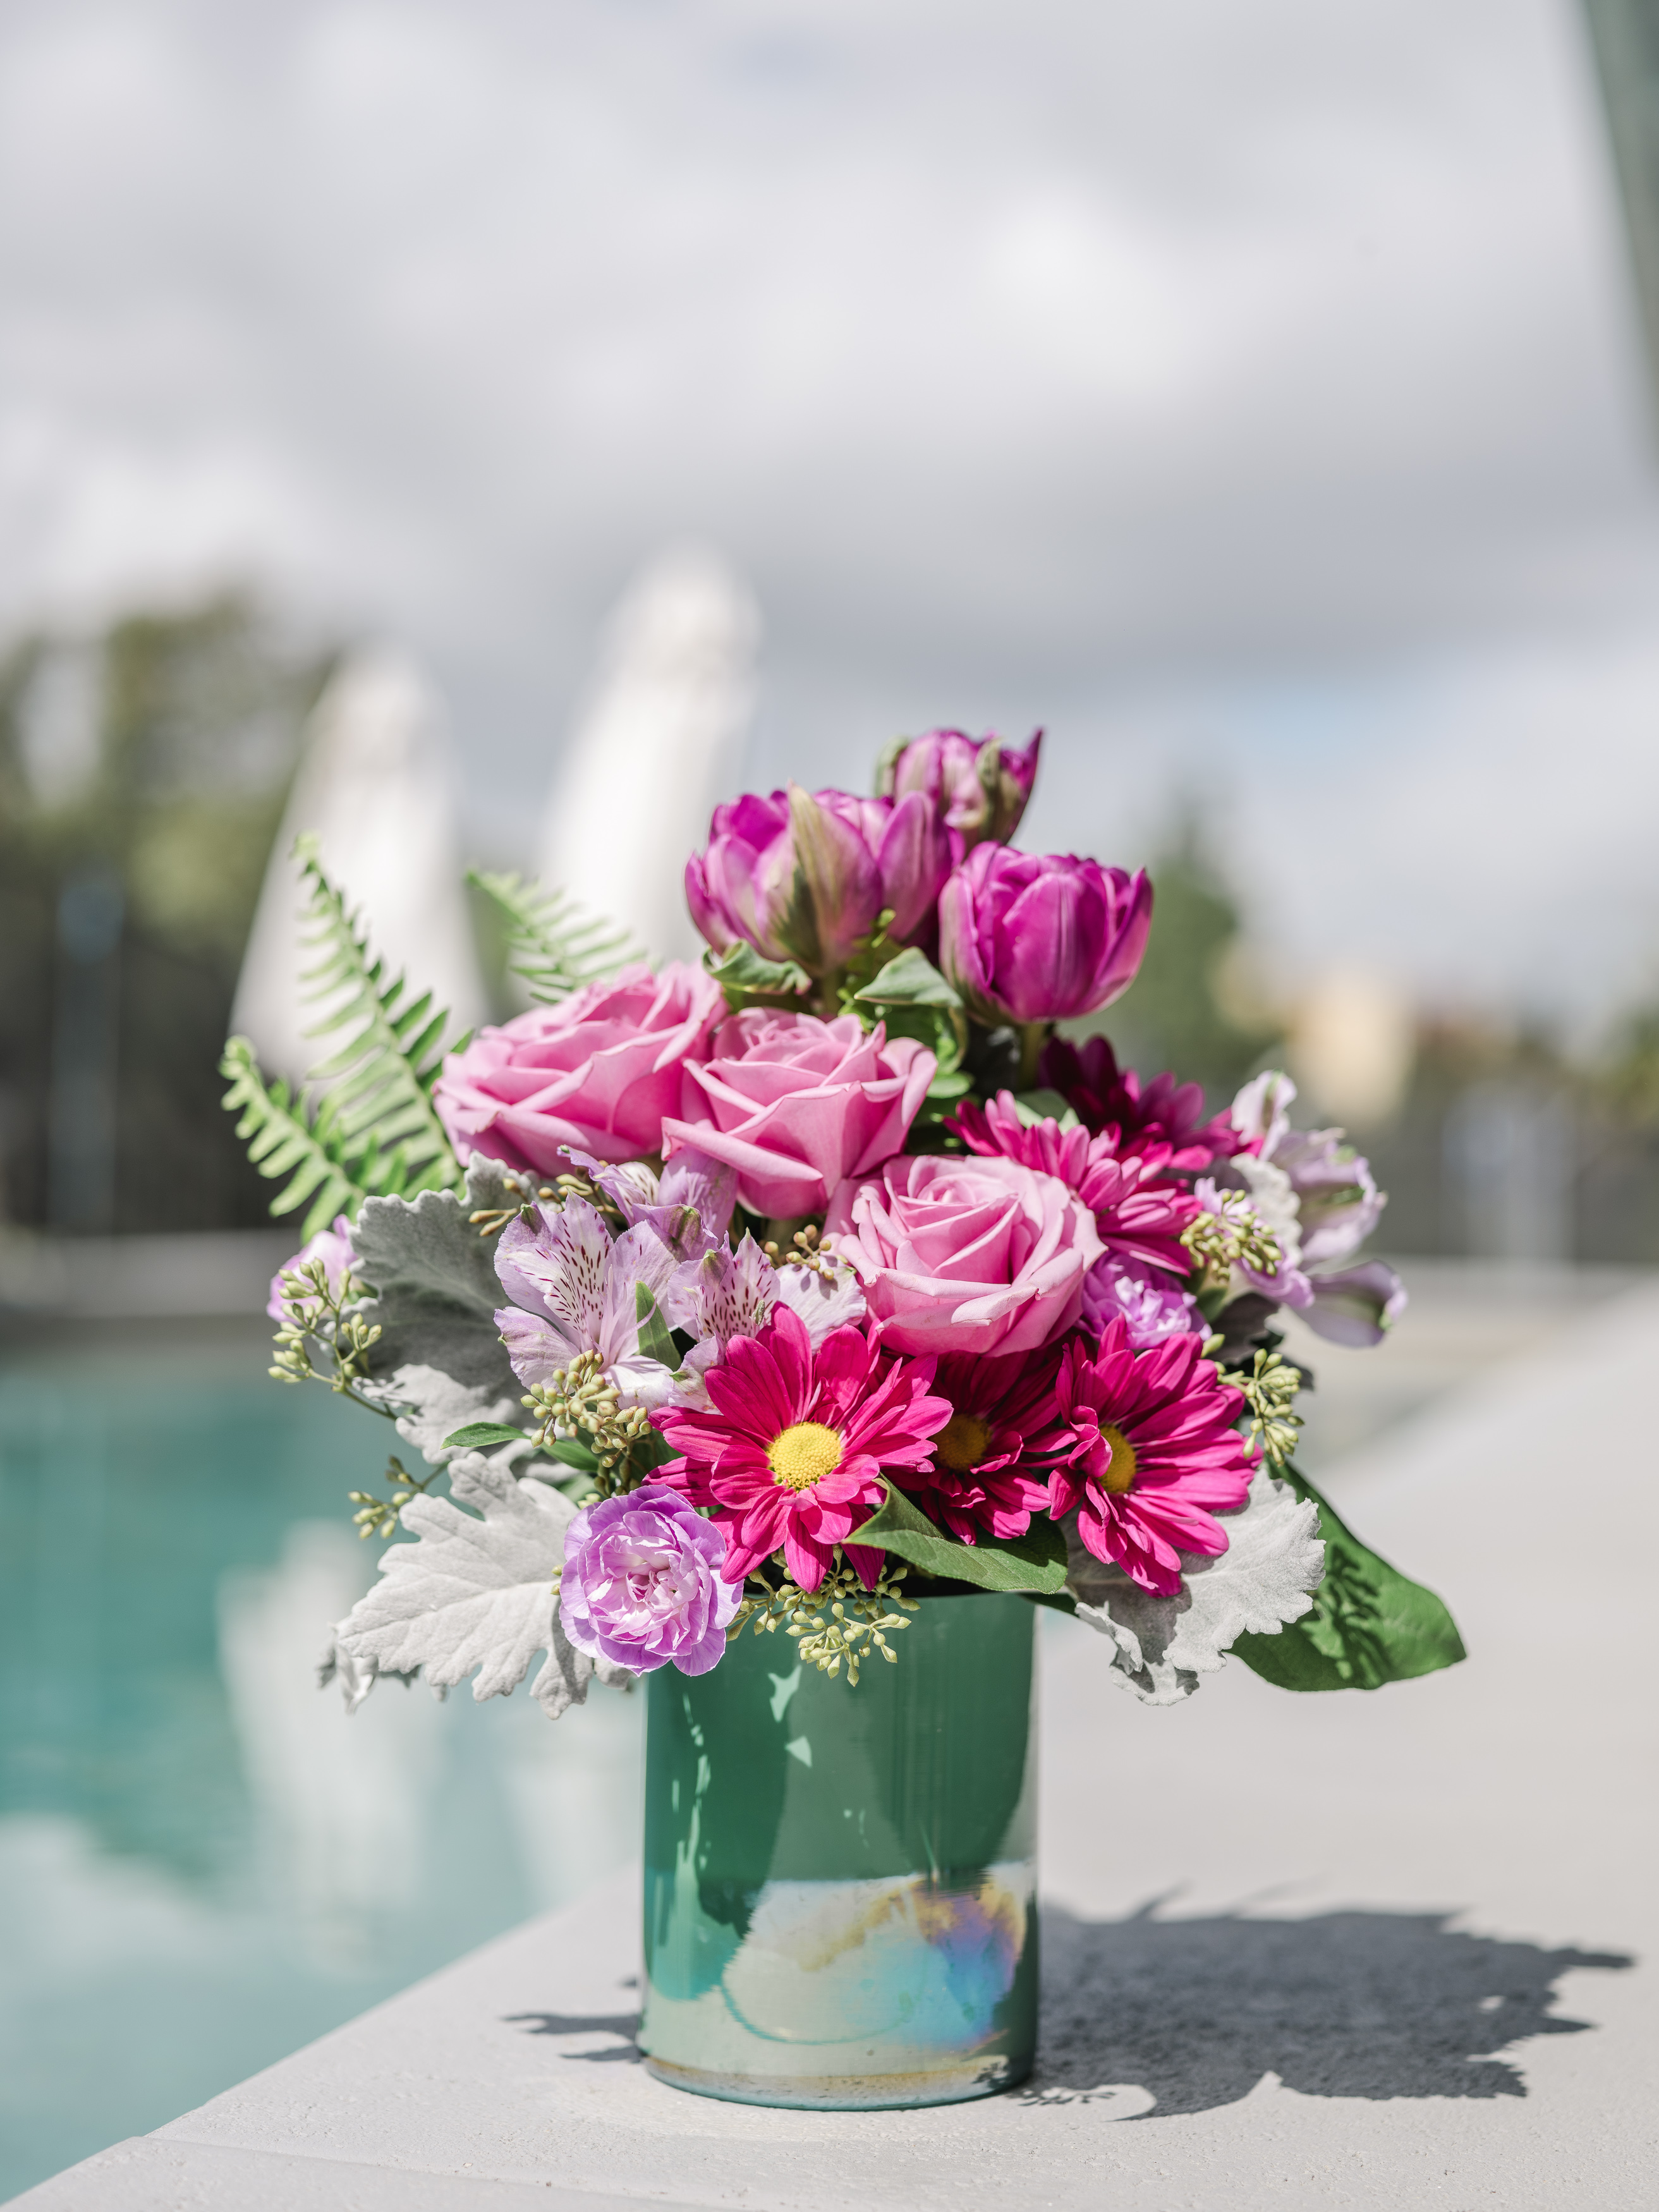 pink roses, pink carnations, purple flowers, and more in a blue glass vase sitting by a pool